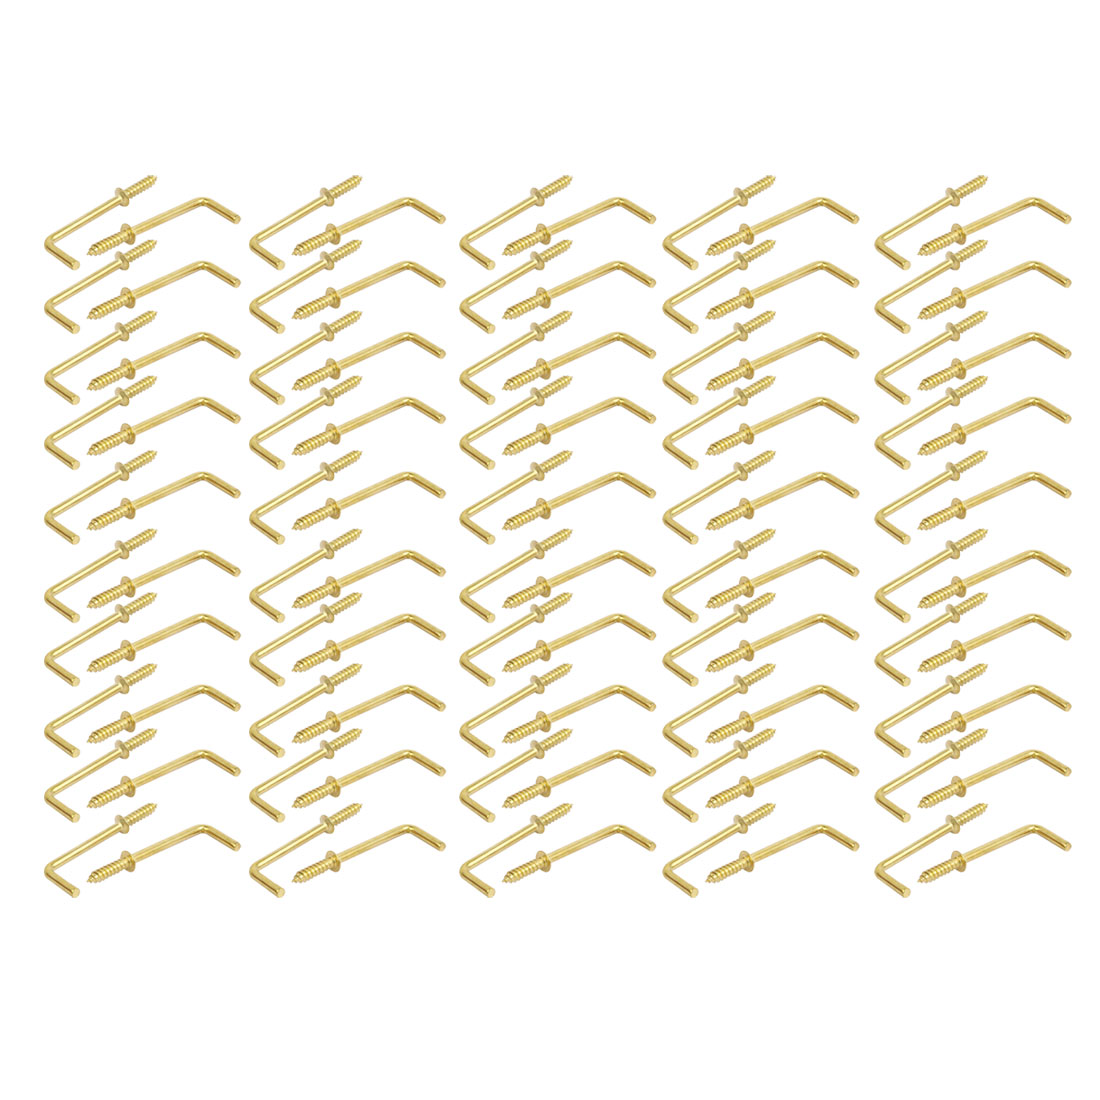 46mm Length Carbon Steel Brass Plated L-Shape Self Tapping Screws 100pcs